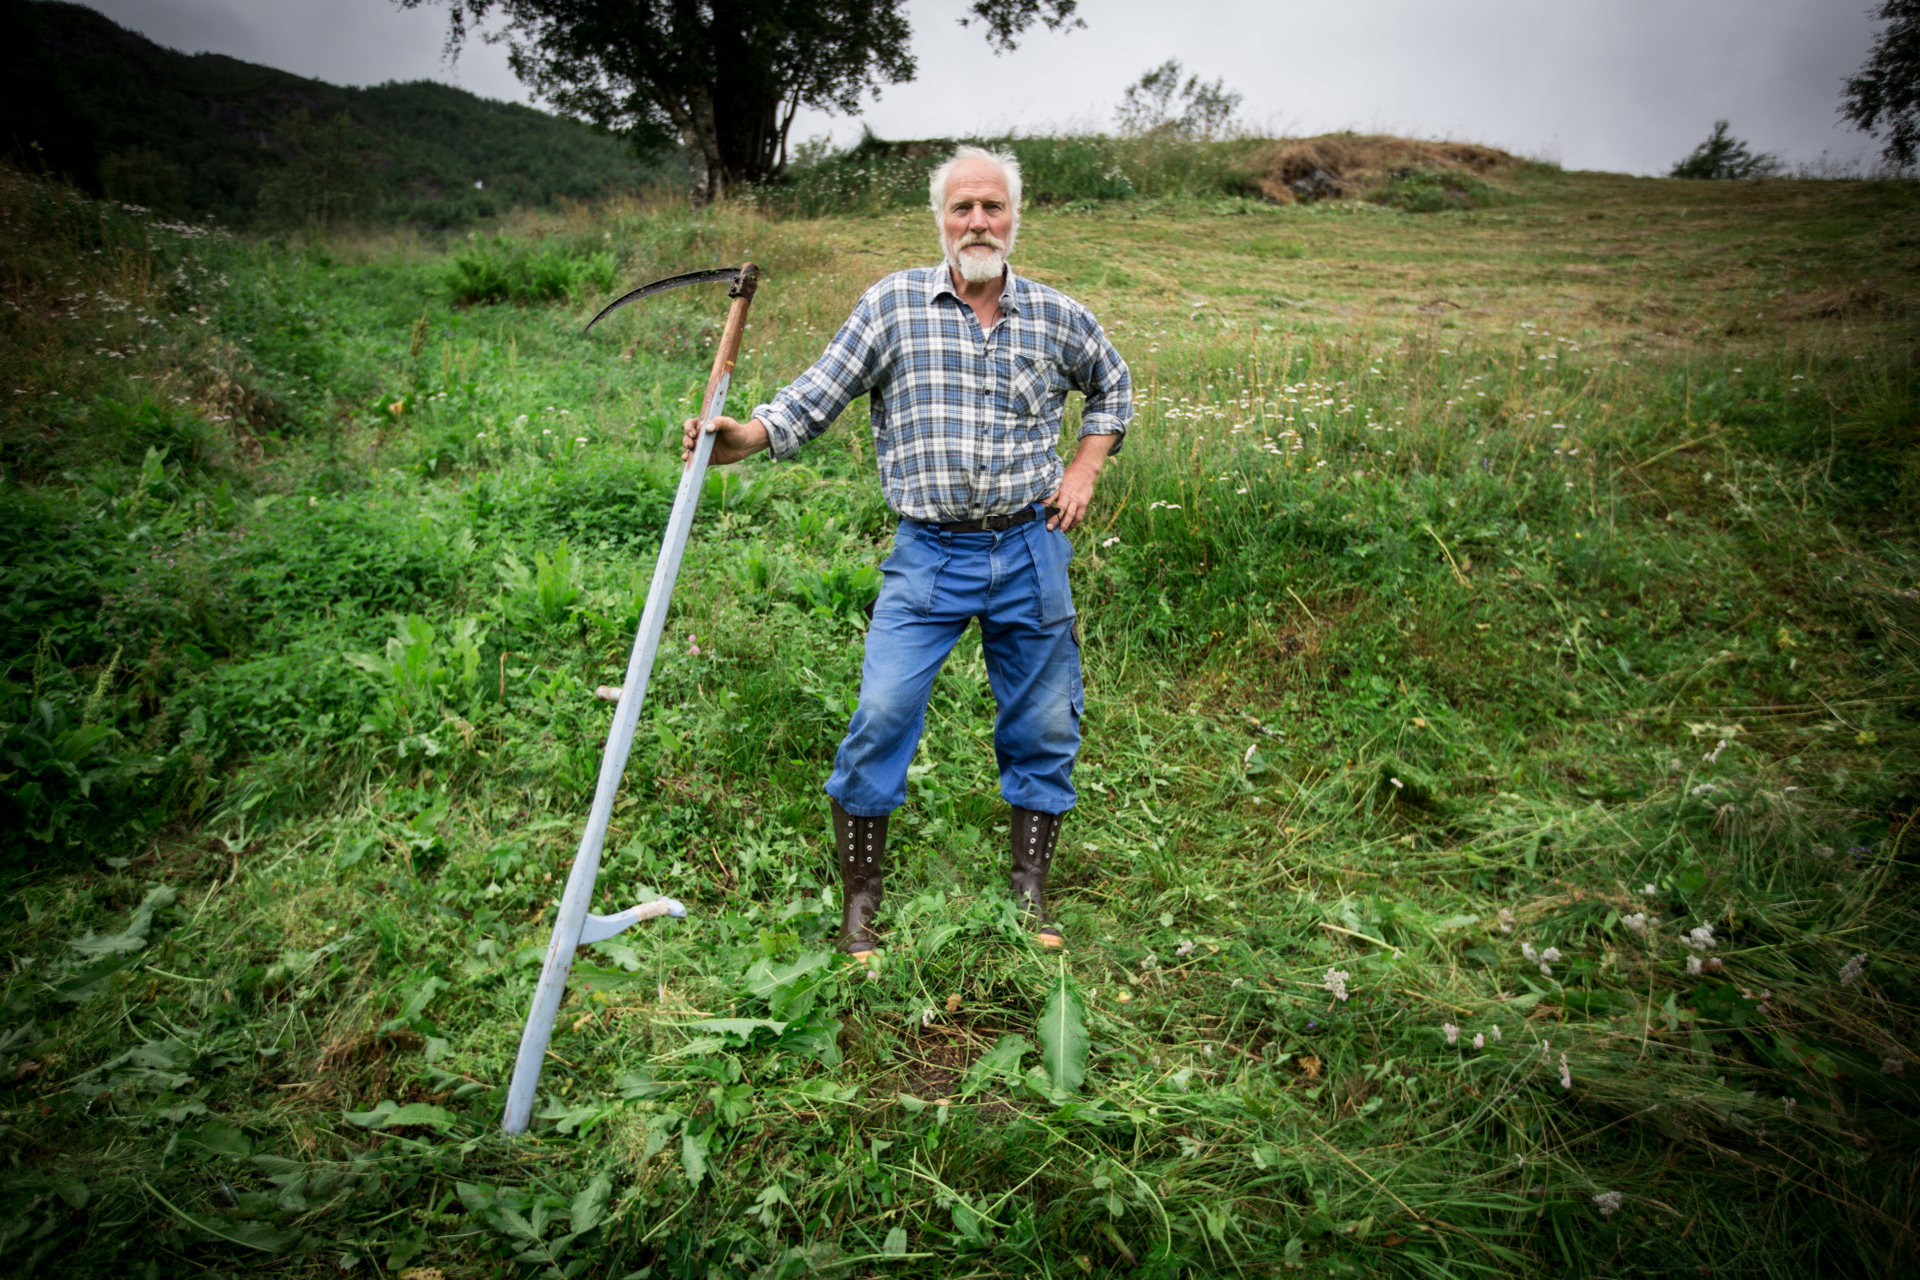 Farmer Terje Nystabakk cuts the grass on his fields with the old school scythe